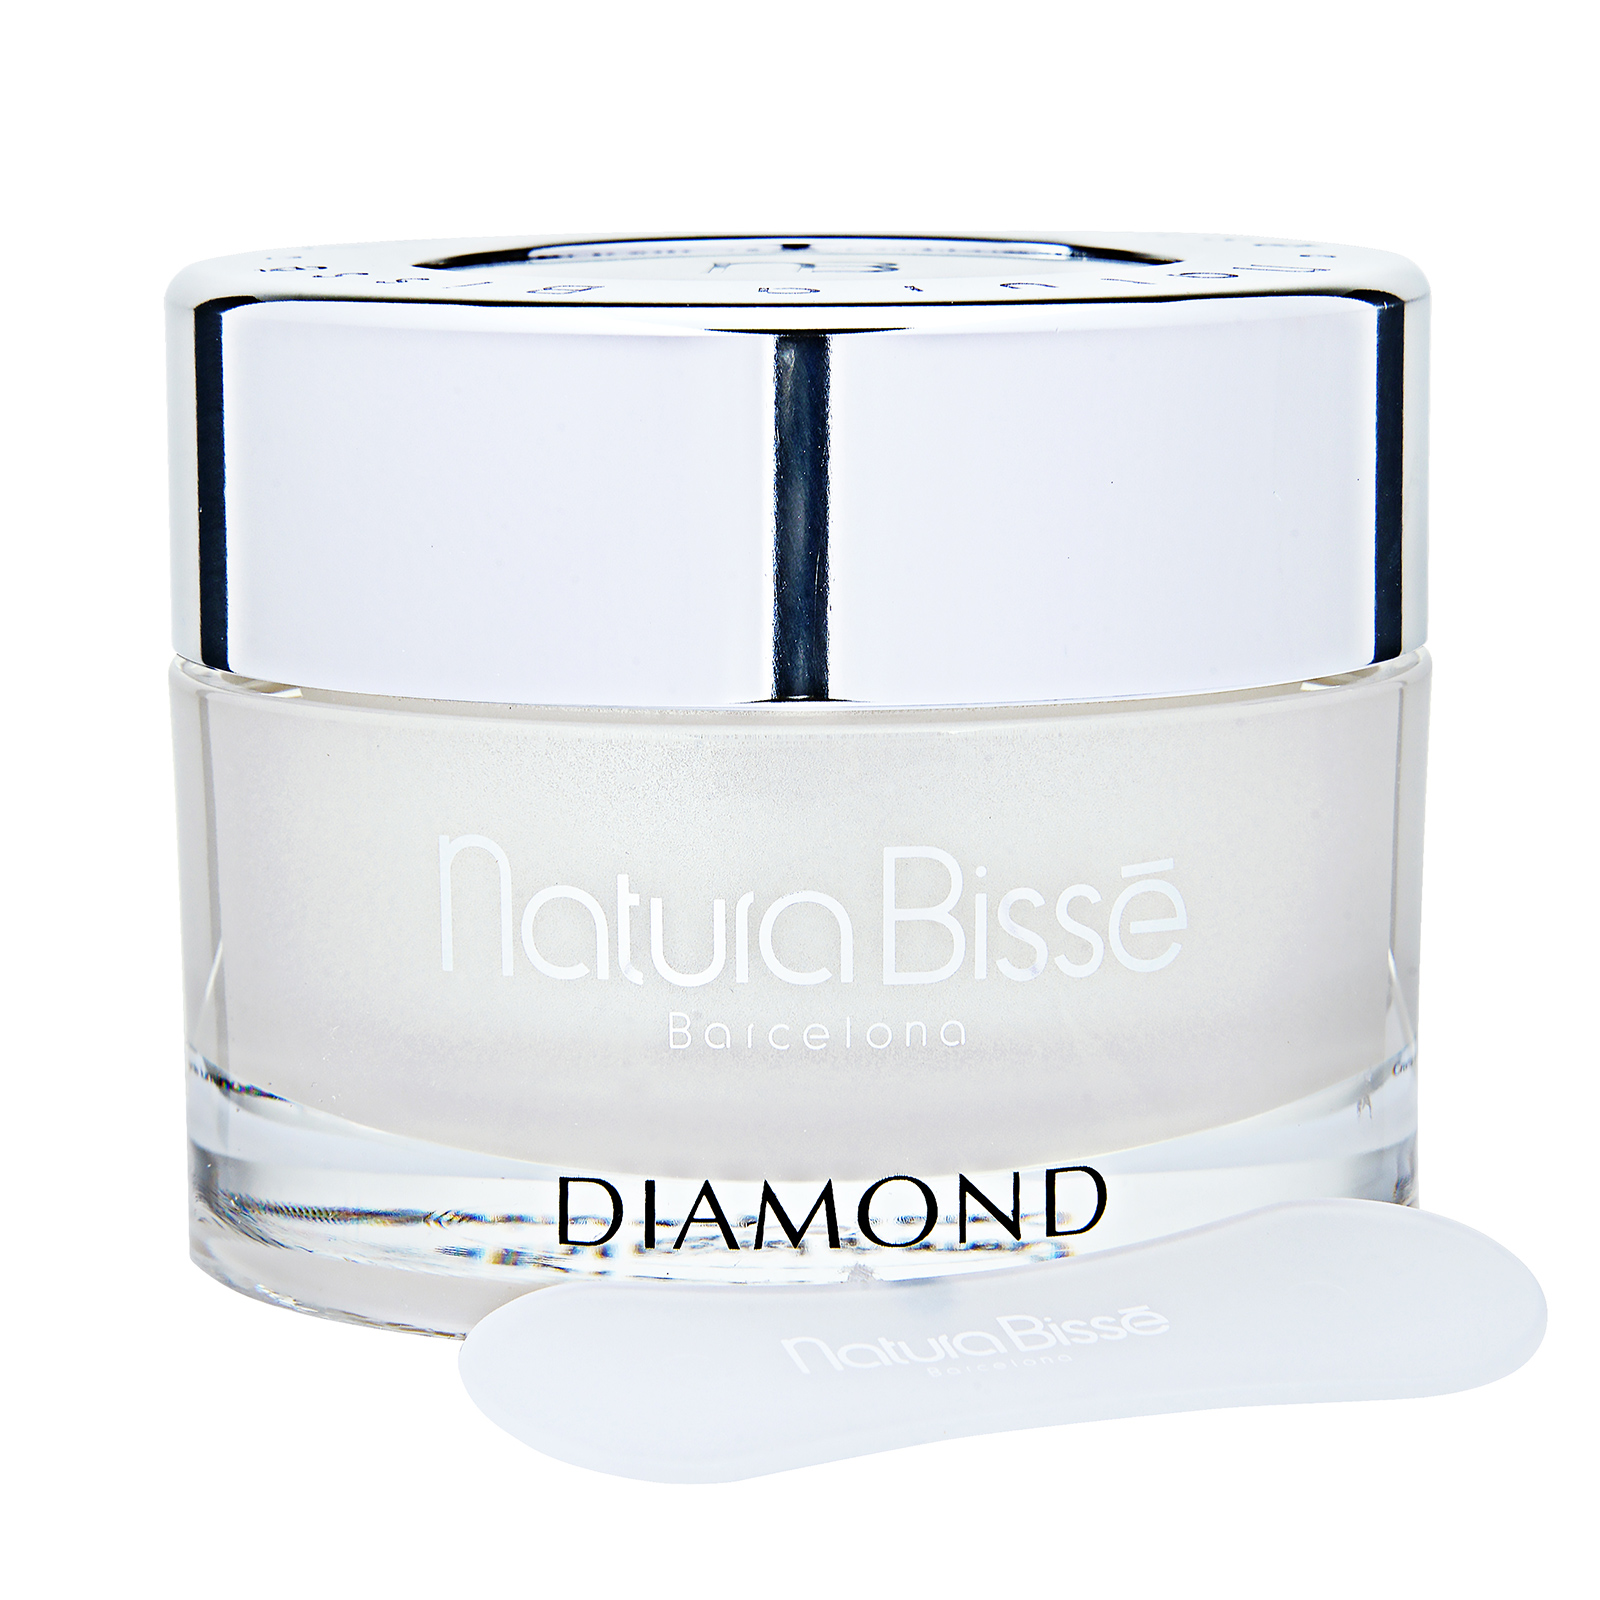 Natura Bisse Diamond White Rich Luxury Cleanse 0.7oz, 200ml